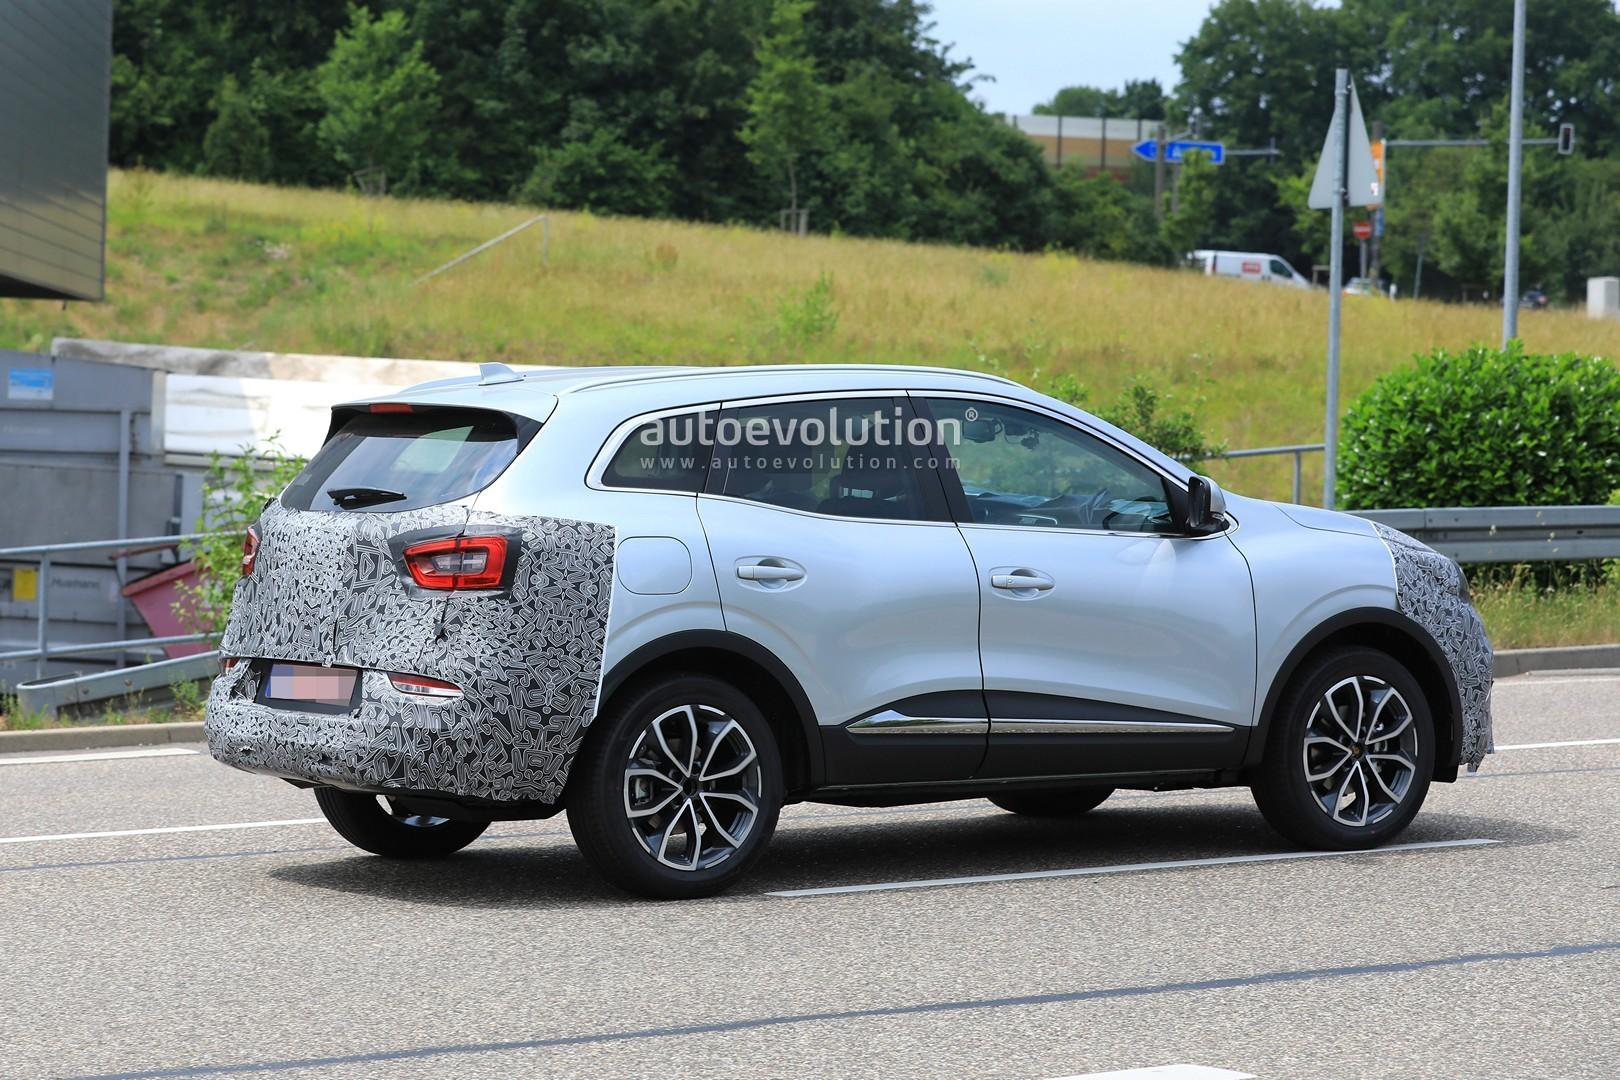 2019 Renault Kadjar Facelift Spied With New Front End ...